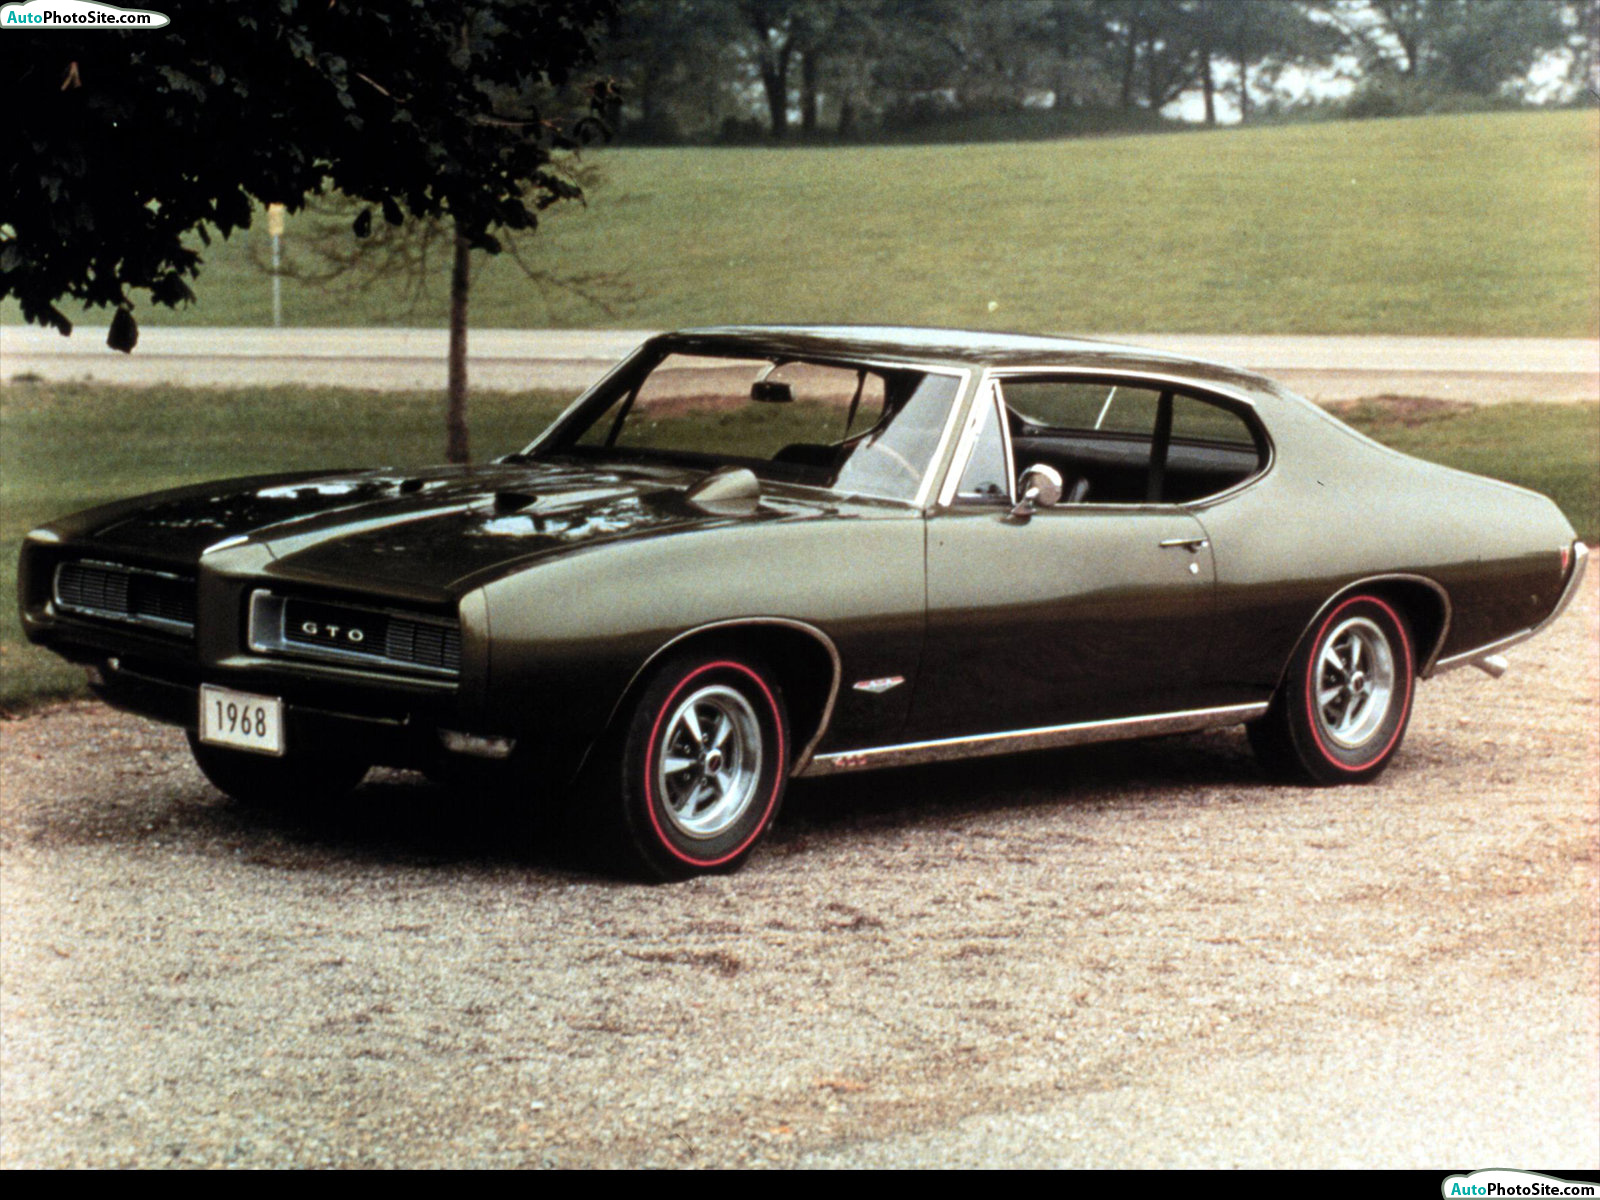 medium resolution of the gto was history but for the next 30 years the gto legend deserved or not would do nothing but grow